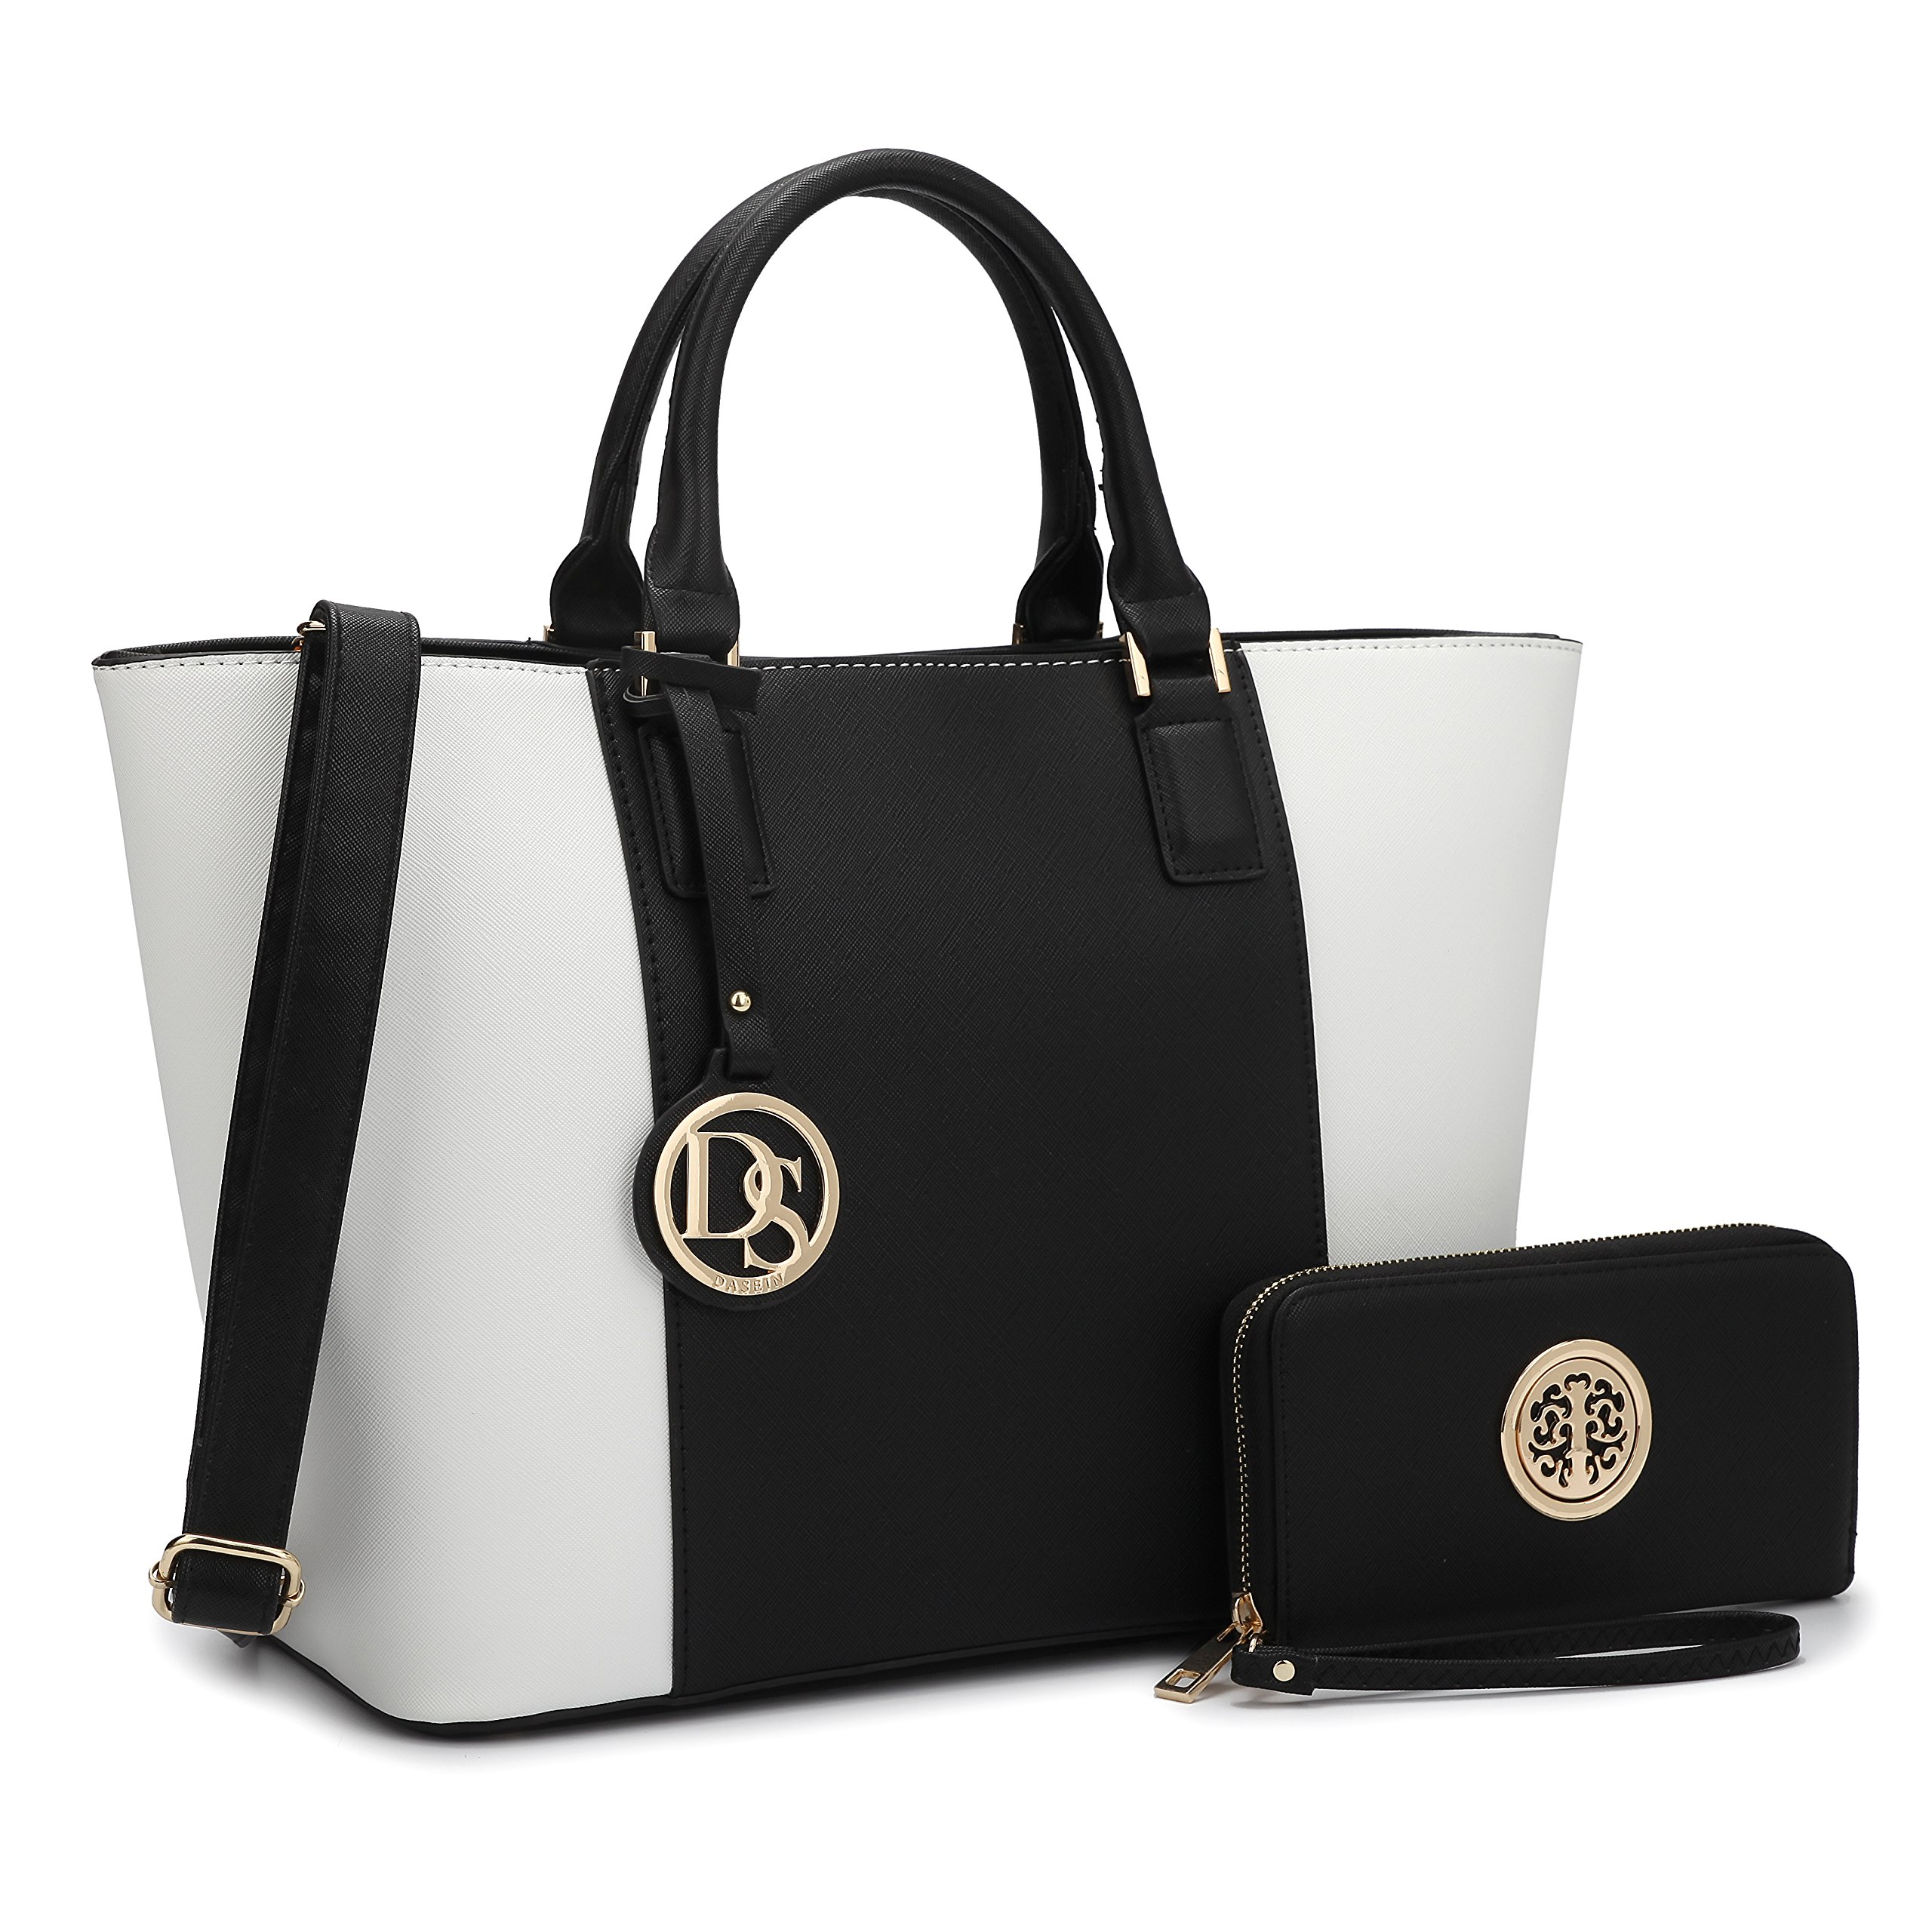 MMK Collection Two tone Designer Handbags for women~ Large Fashion Purses & Handbags~ Beautiful Tote Style(6417) with Free Wallet~Perfect handbag set for Her(6417-Black/White)